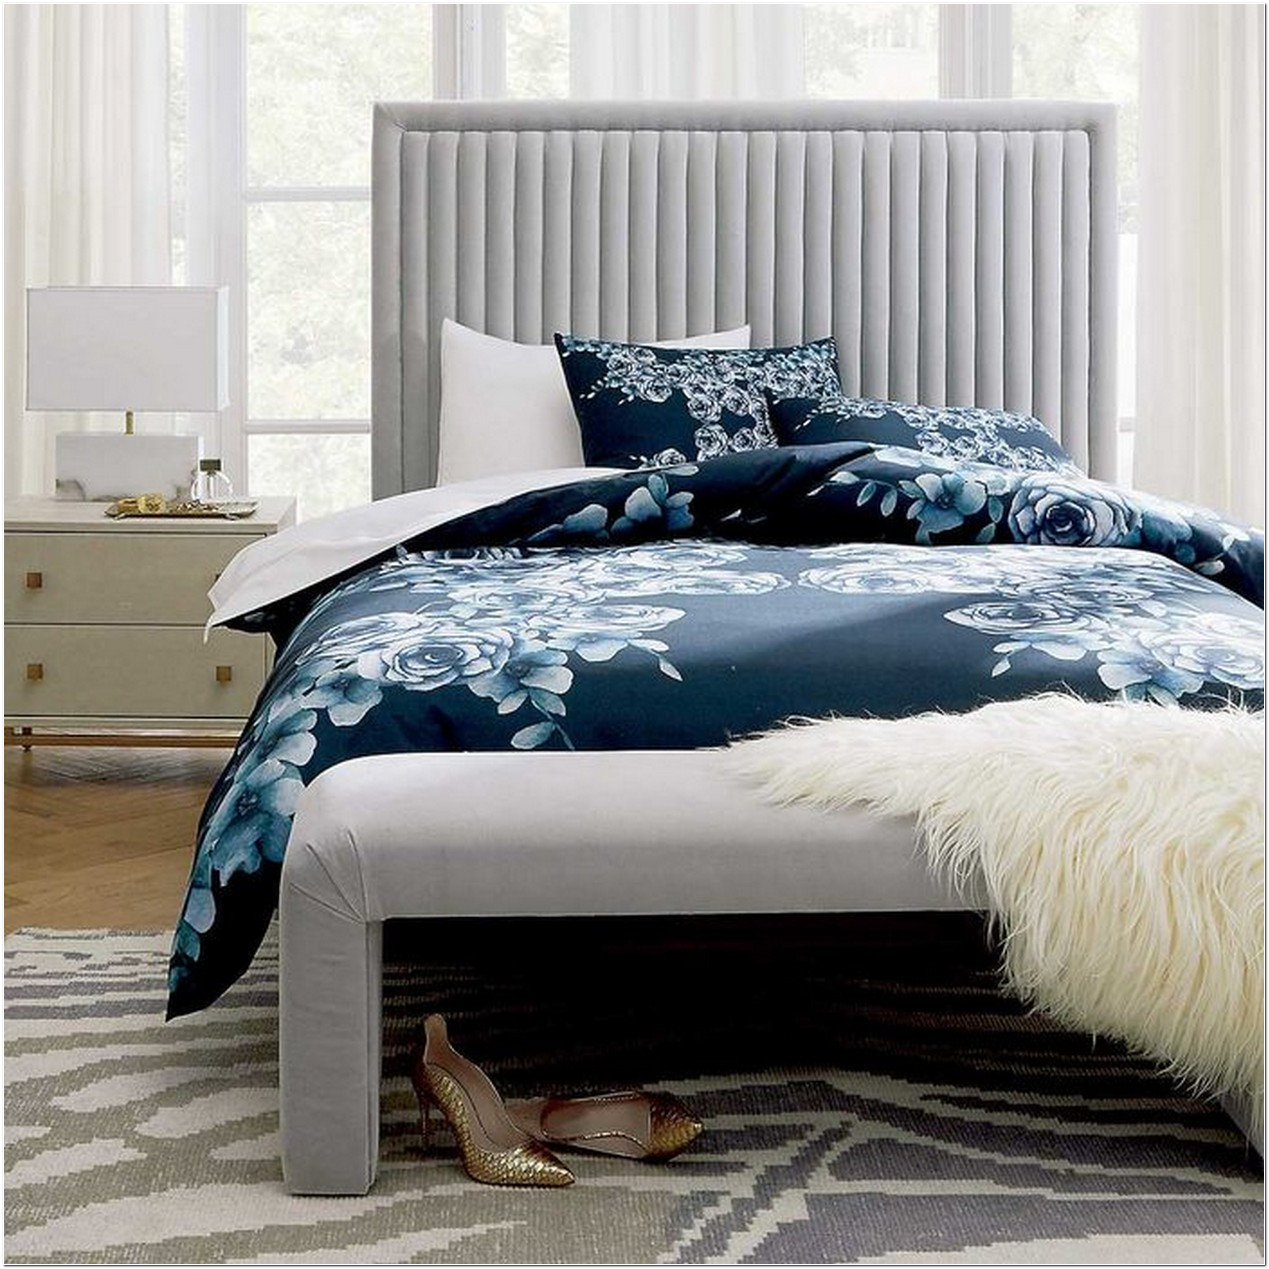 What Ideas Do You Need For A Luxury Bedroom?